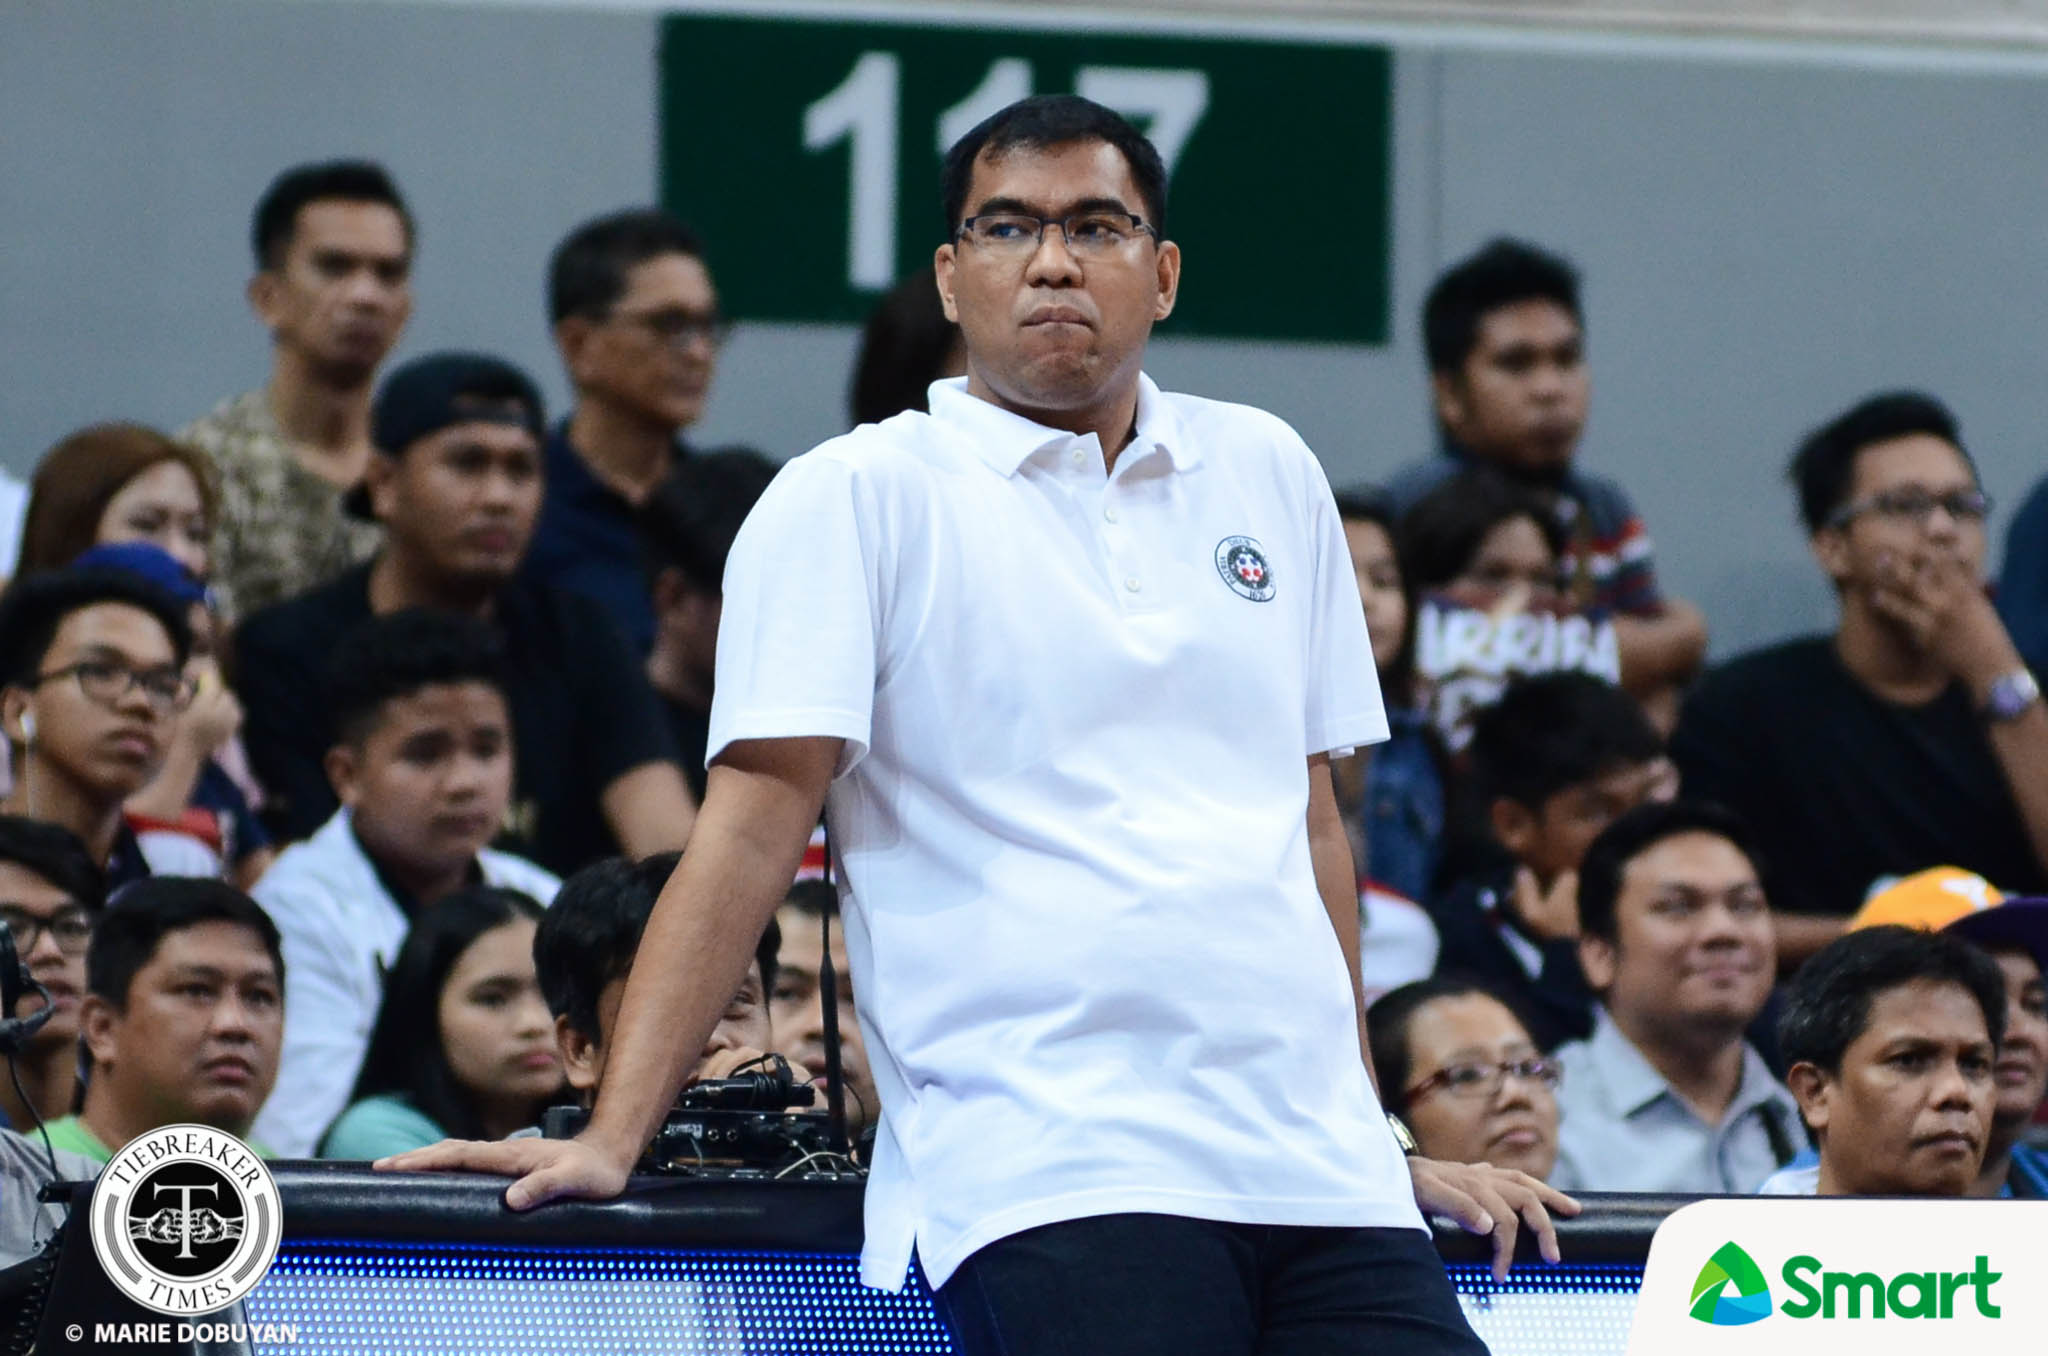 Philippine Sports News - Tiebreaker Times Championship or bust for Jeff Napa as Letran opens its walls for Season 94 Basketball CSJL NCAA News  NCAA Season 93 Seniors Basketball NCAA Season 93 Letran Seniors Basketball Jeff Napa